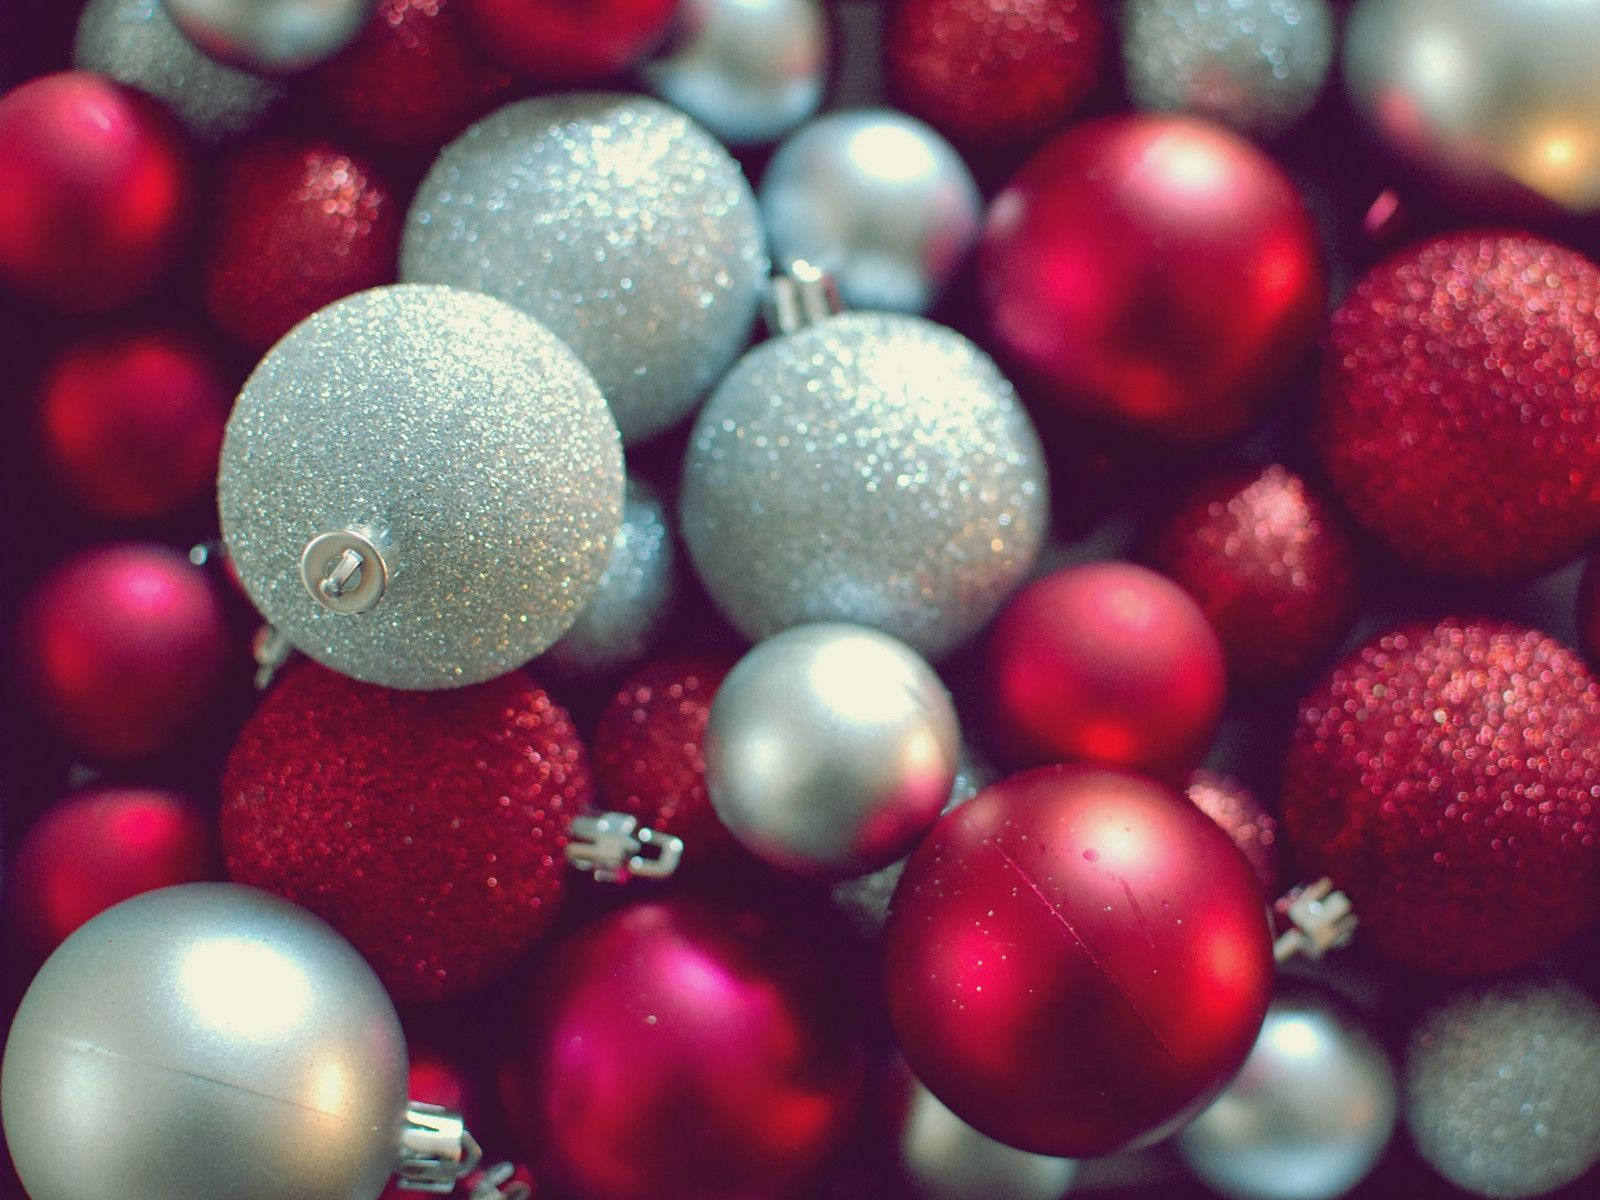 Christmas Wallpaper Ornaments